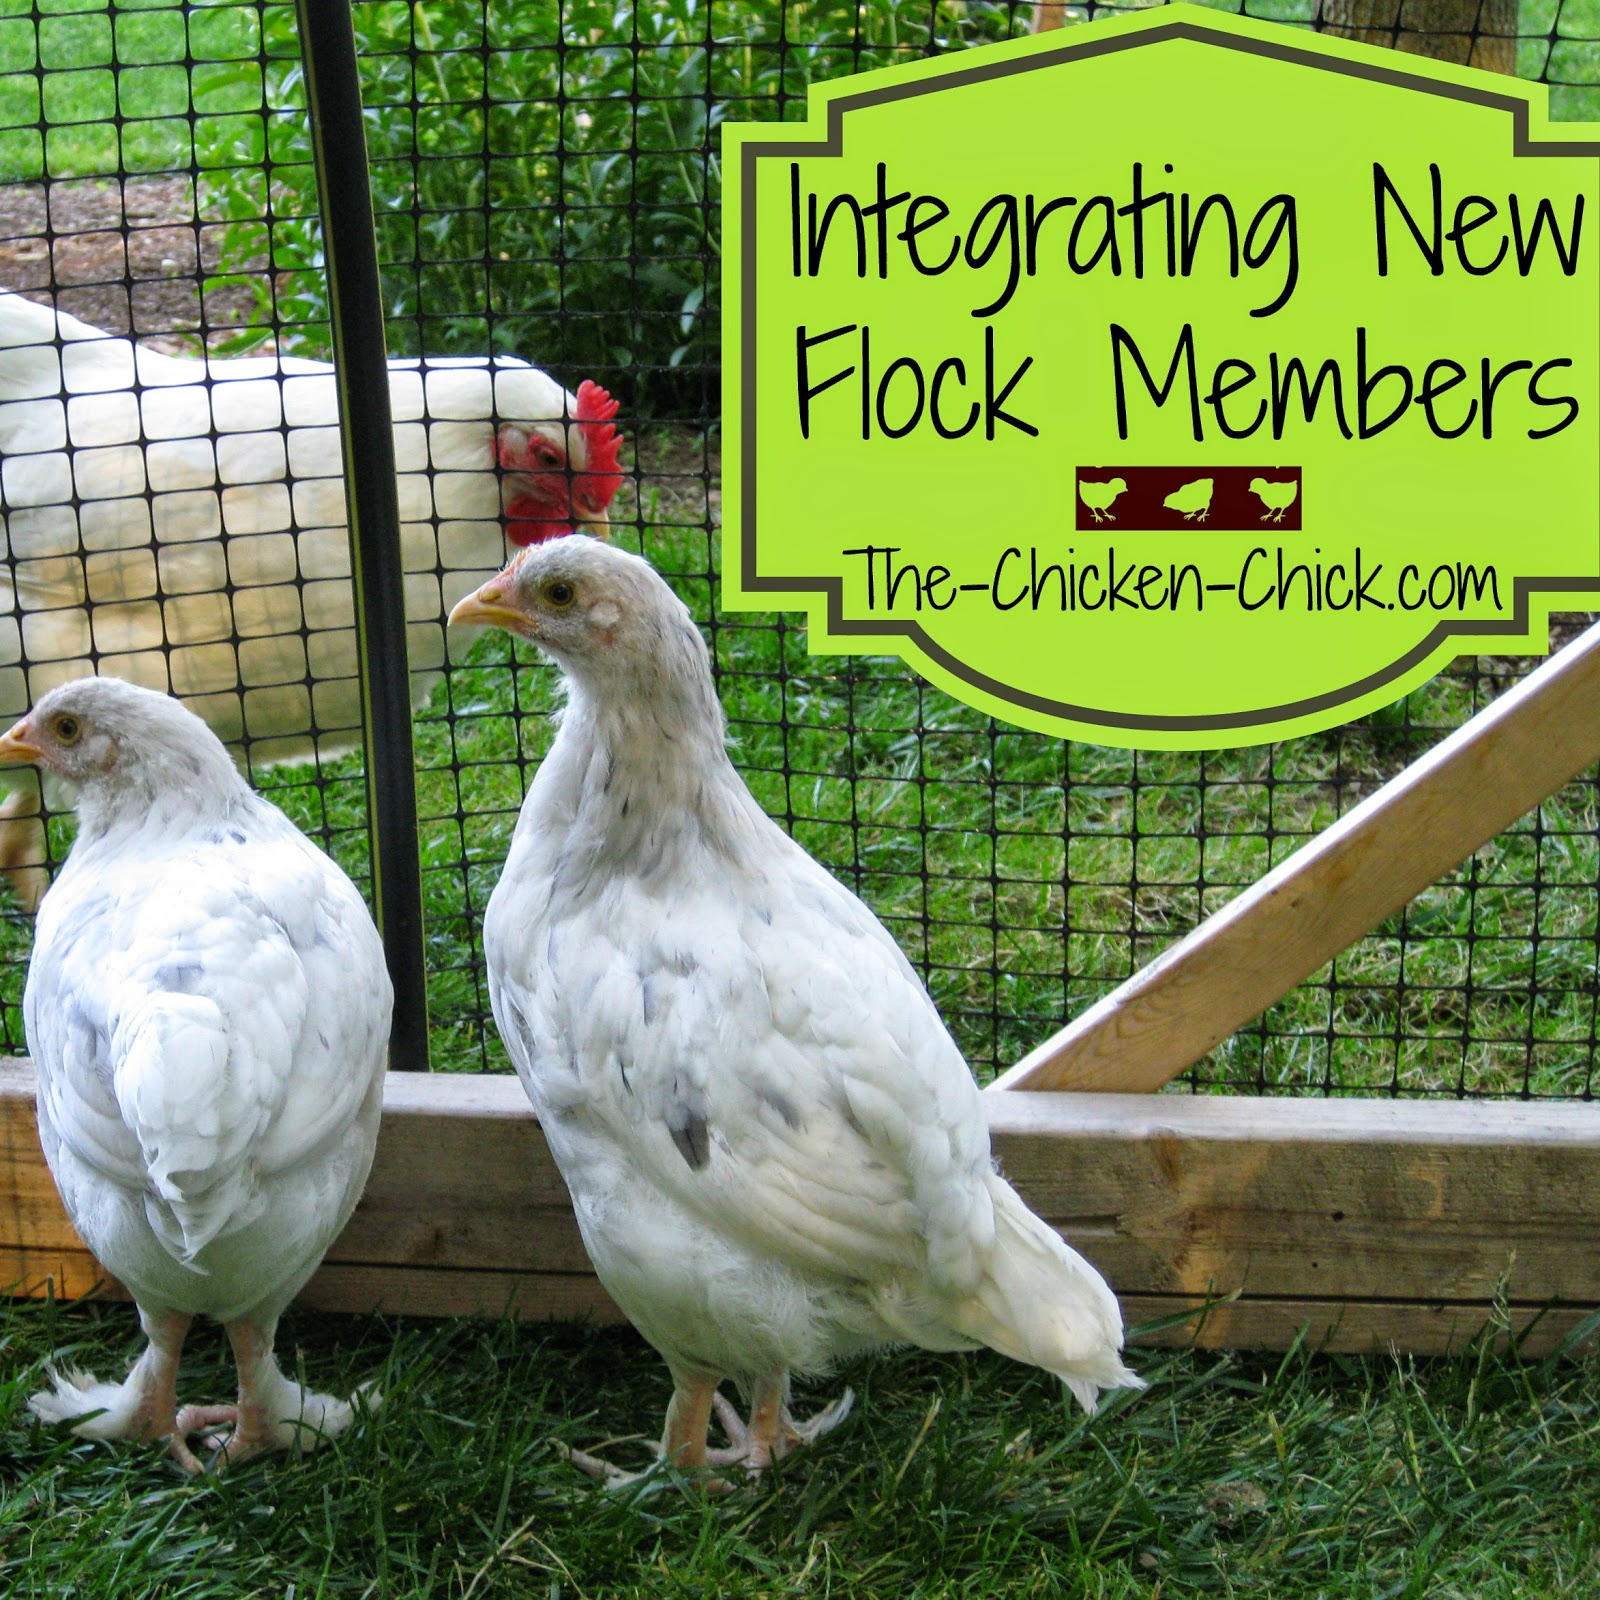 After the quarantine period has expired and everyone checks out okay, the process of integration into the existing flock can begin. Learn how to go about introducing the newbies without bloodshed while minimizing stress in this article.